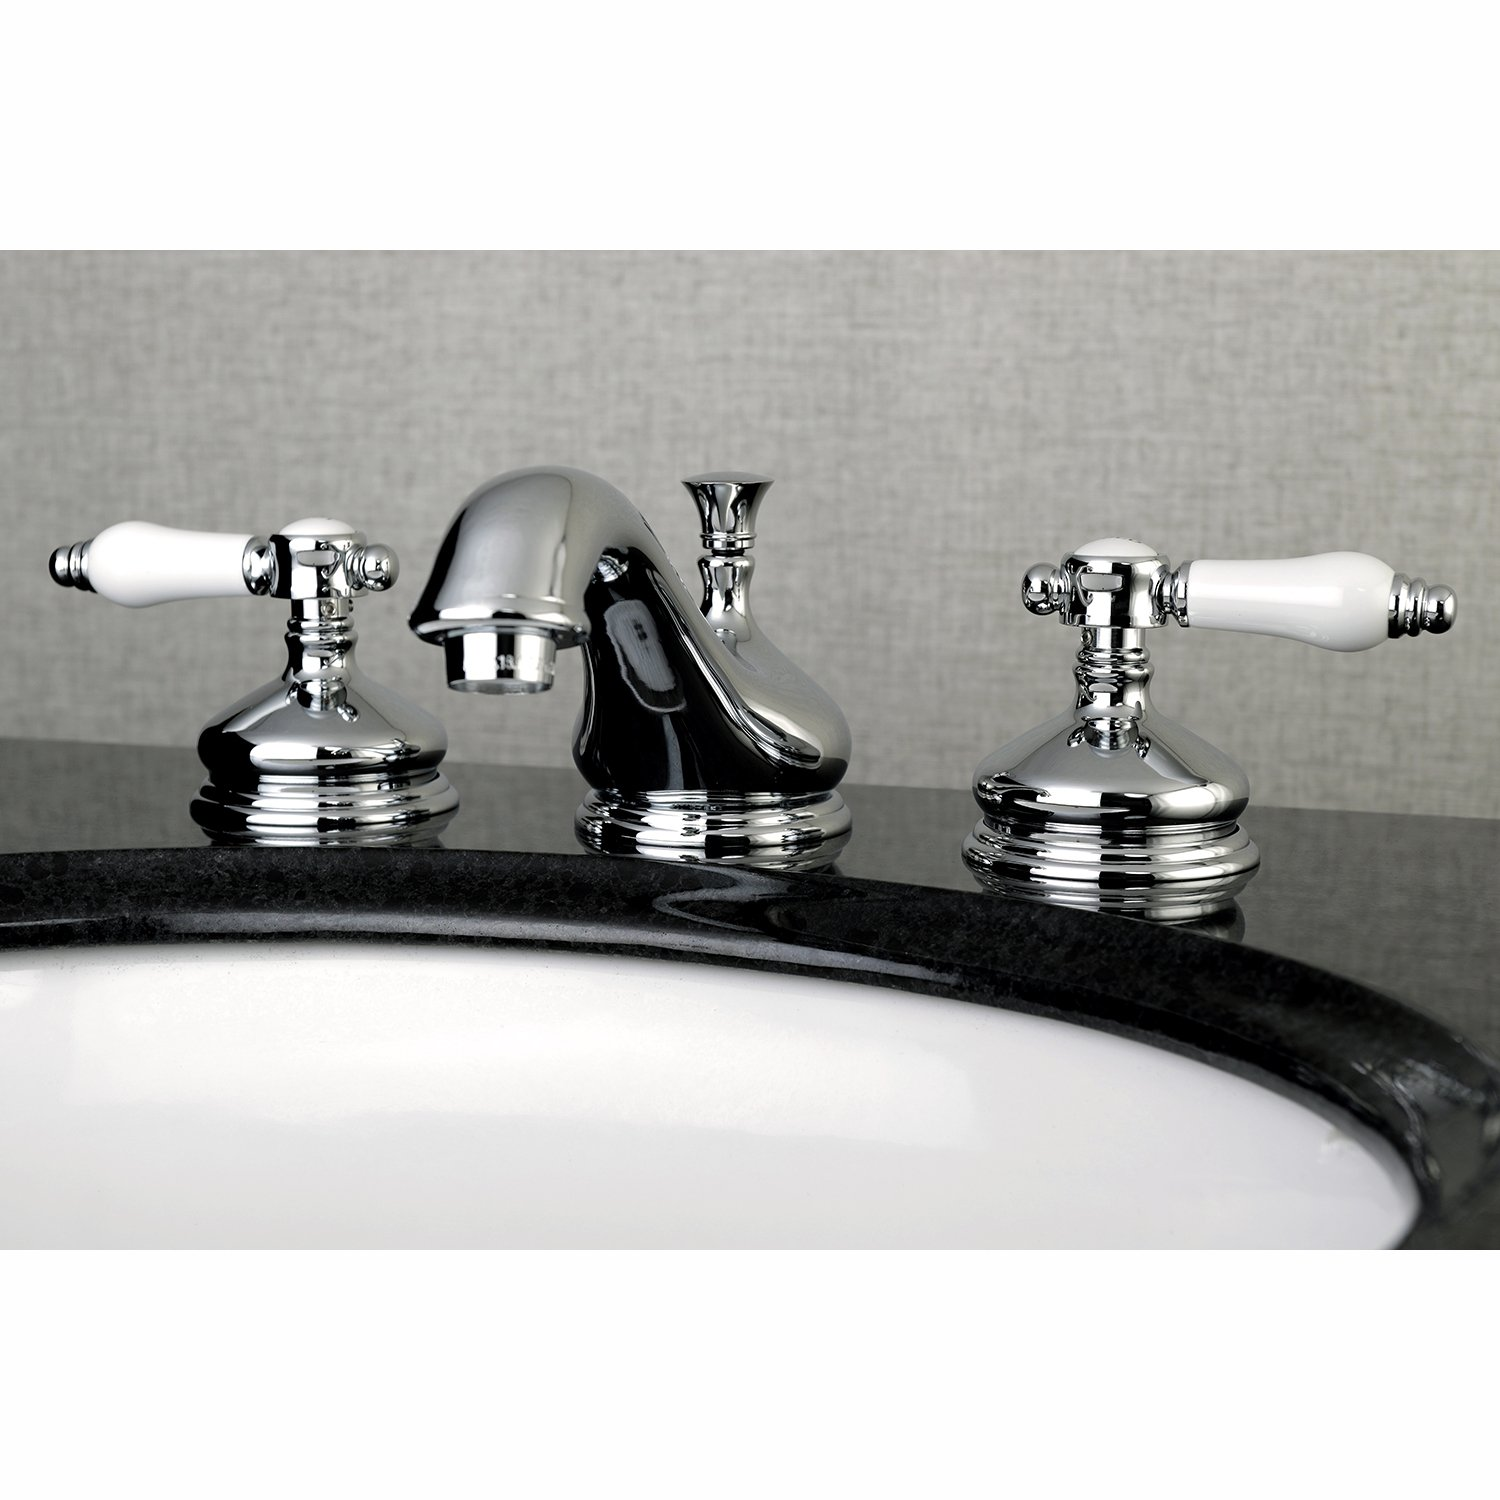 Kingston Brass KS1161BPL Bel Air Widespread Lavatory Faucet with Brass Pop-Up, 5-1/2 inch In Spout Reach, Chrome by Kingston Brass (Image #1)